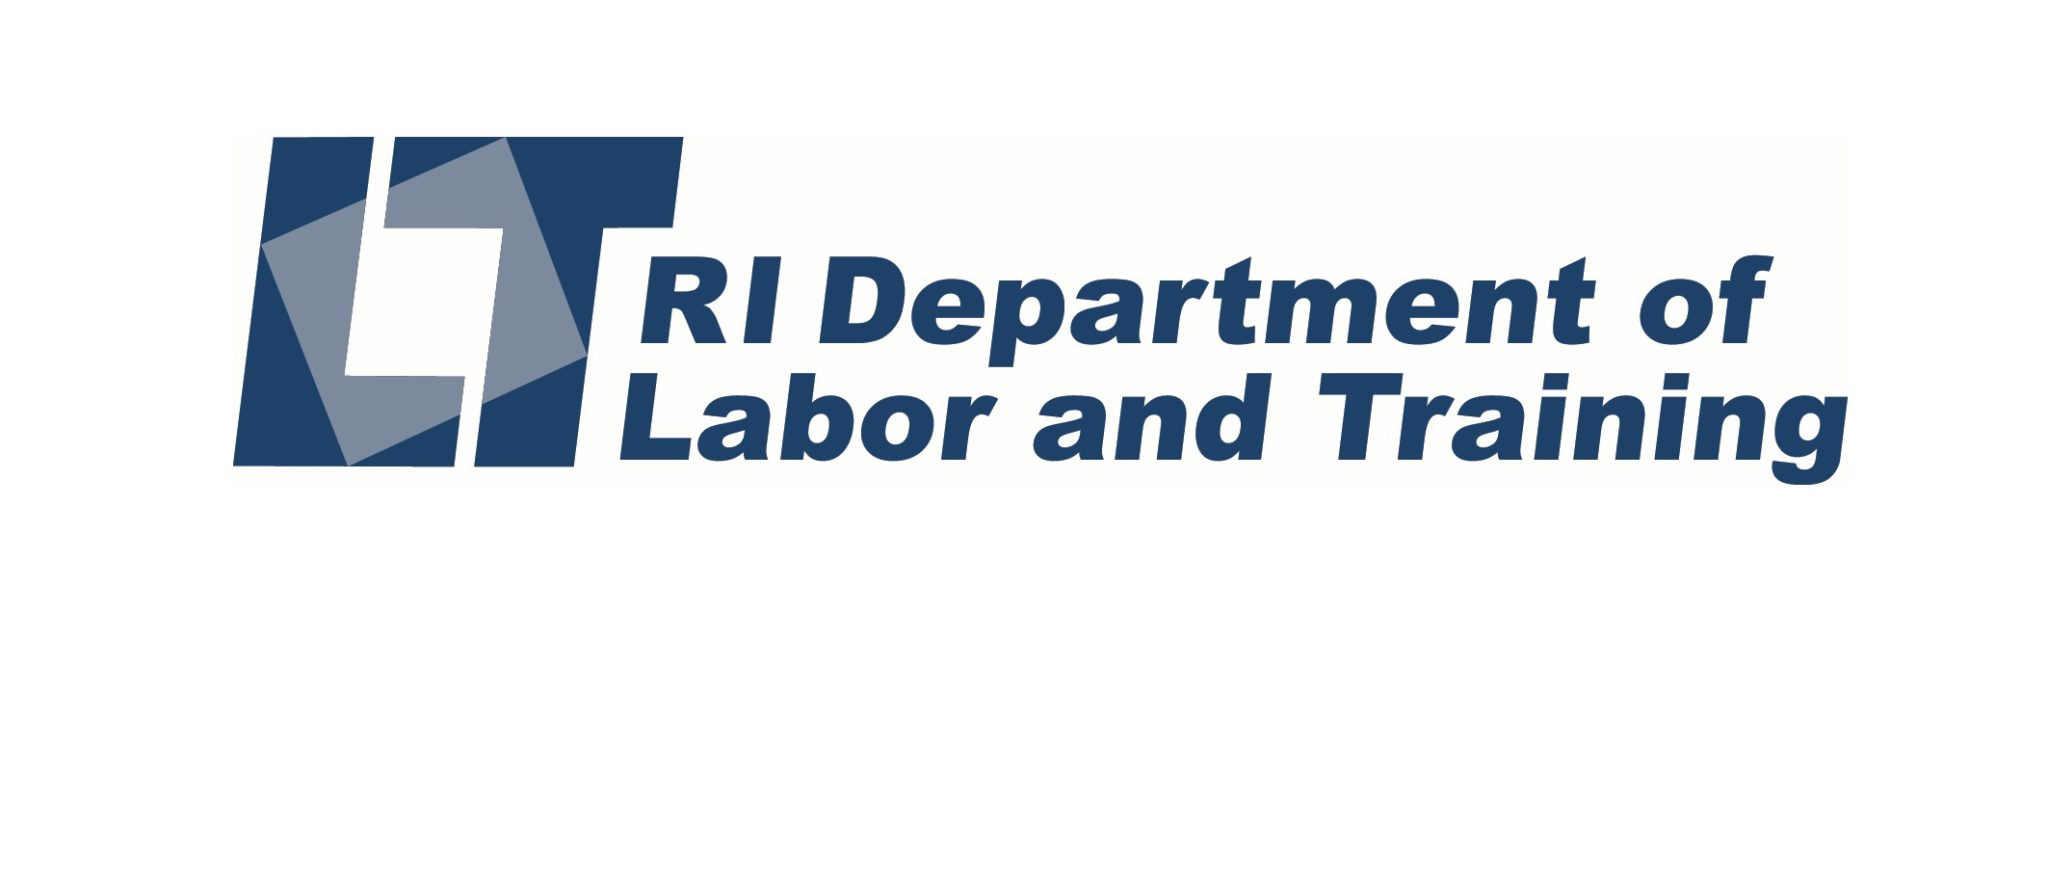 THE RHODE ISLAND CONGRESSIONAL Delegation announced a $2.7 million grant for the Department of Labor and Training on Thursday.